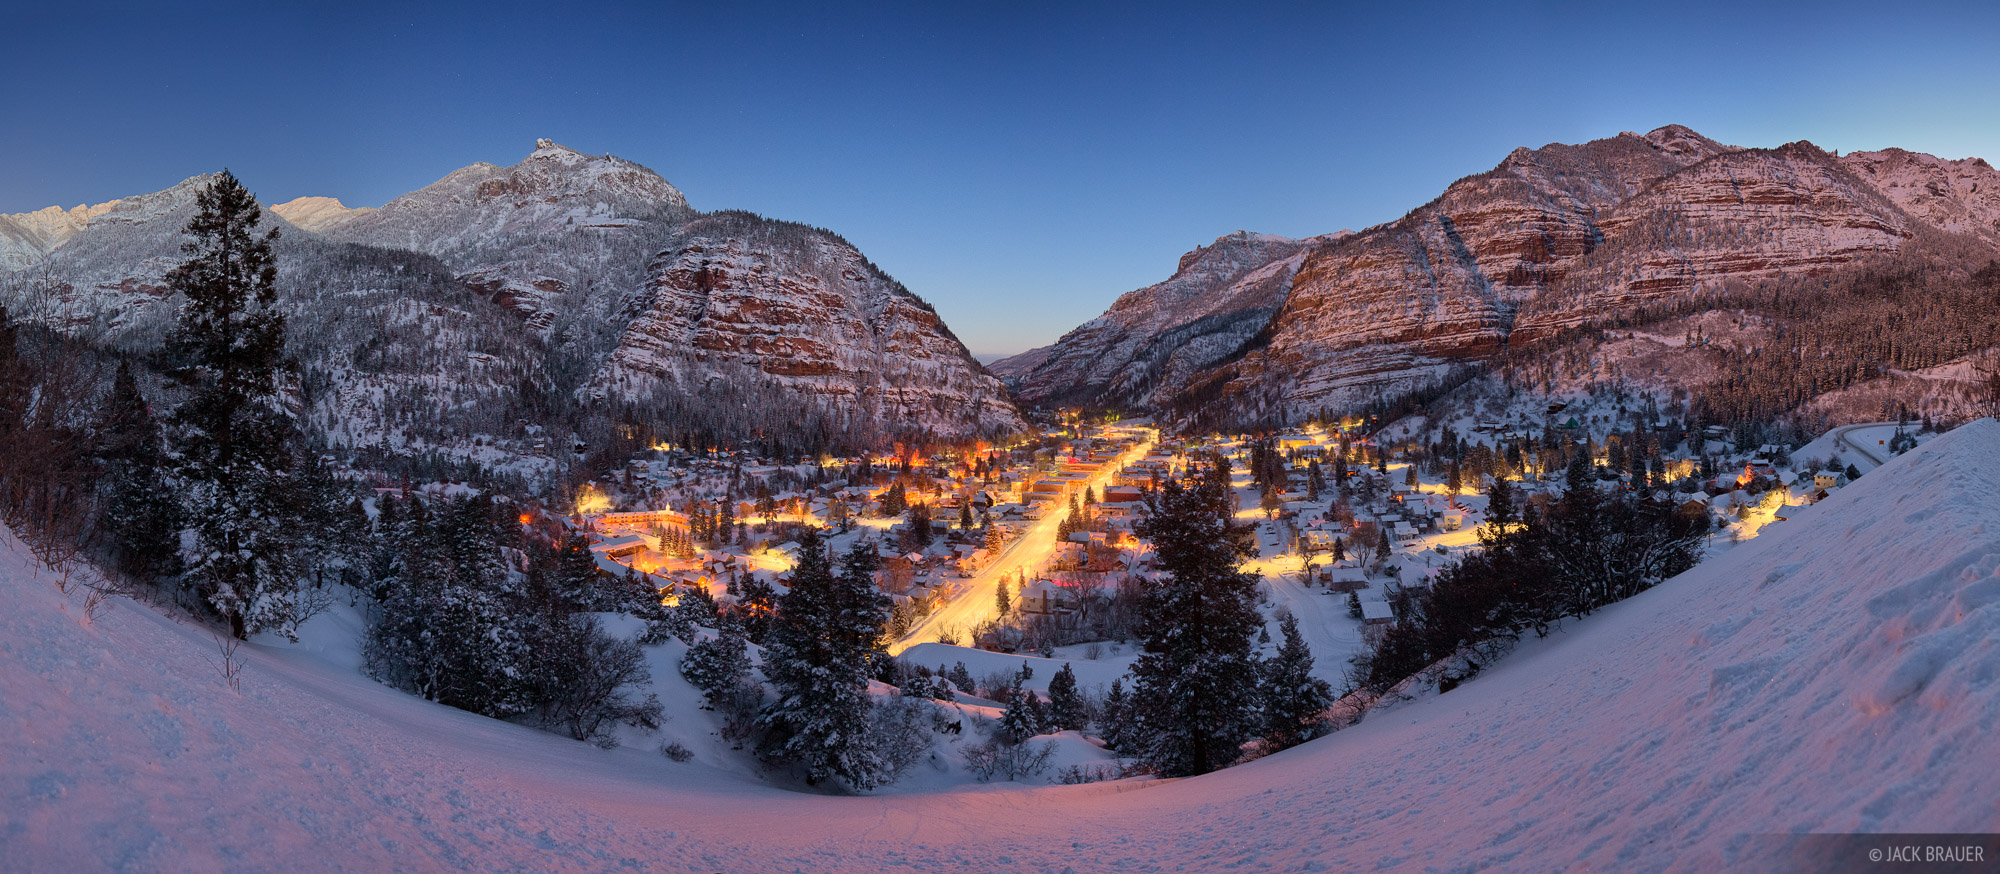 Ouray, San Juan mountains, Colorado, winter, panorama, dawn, february, lights, photo